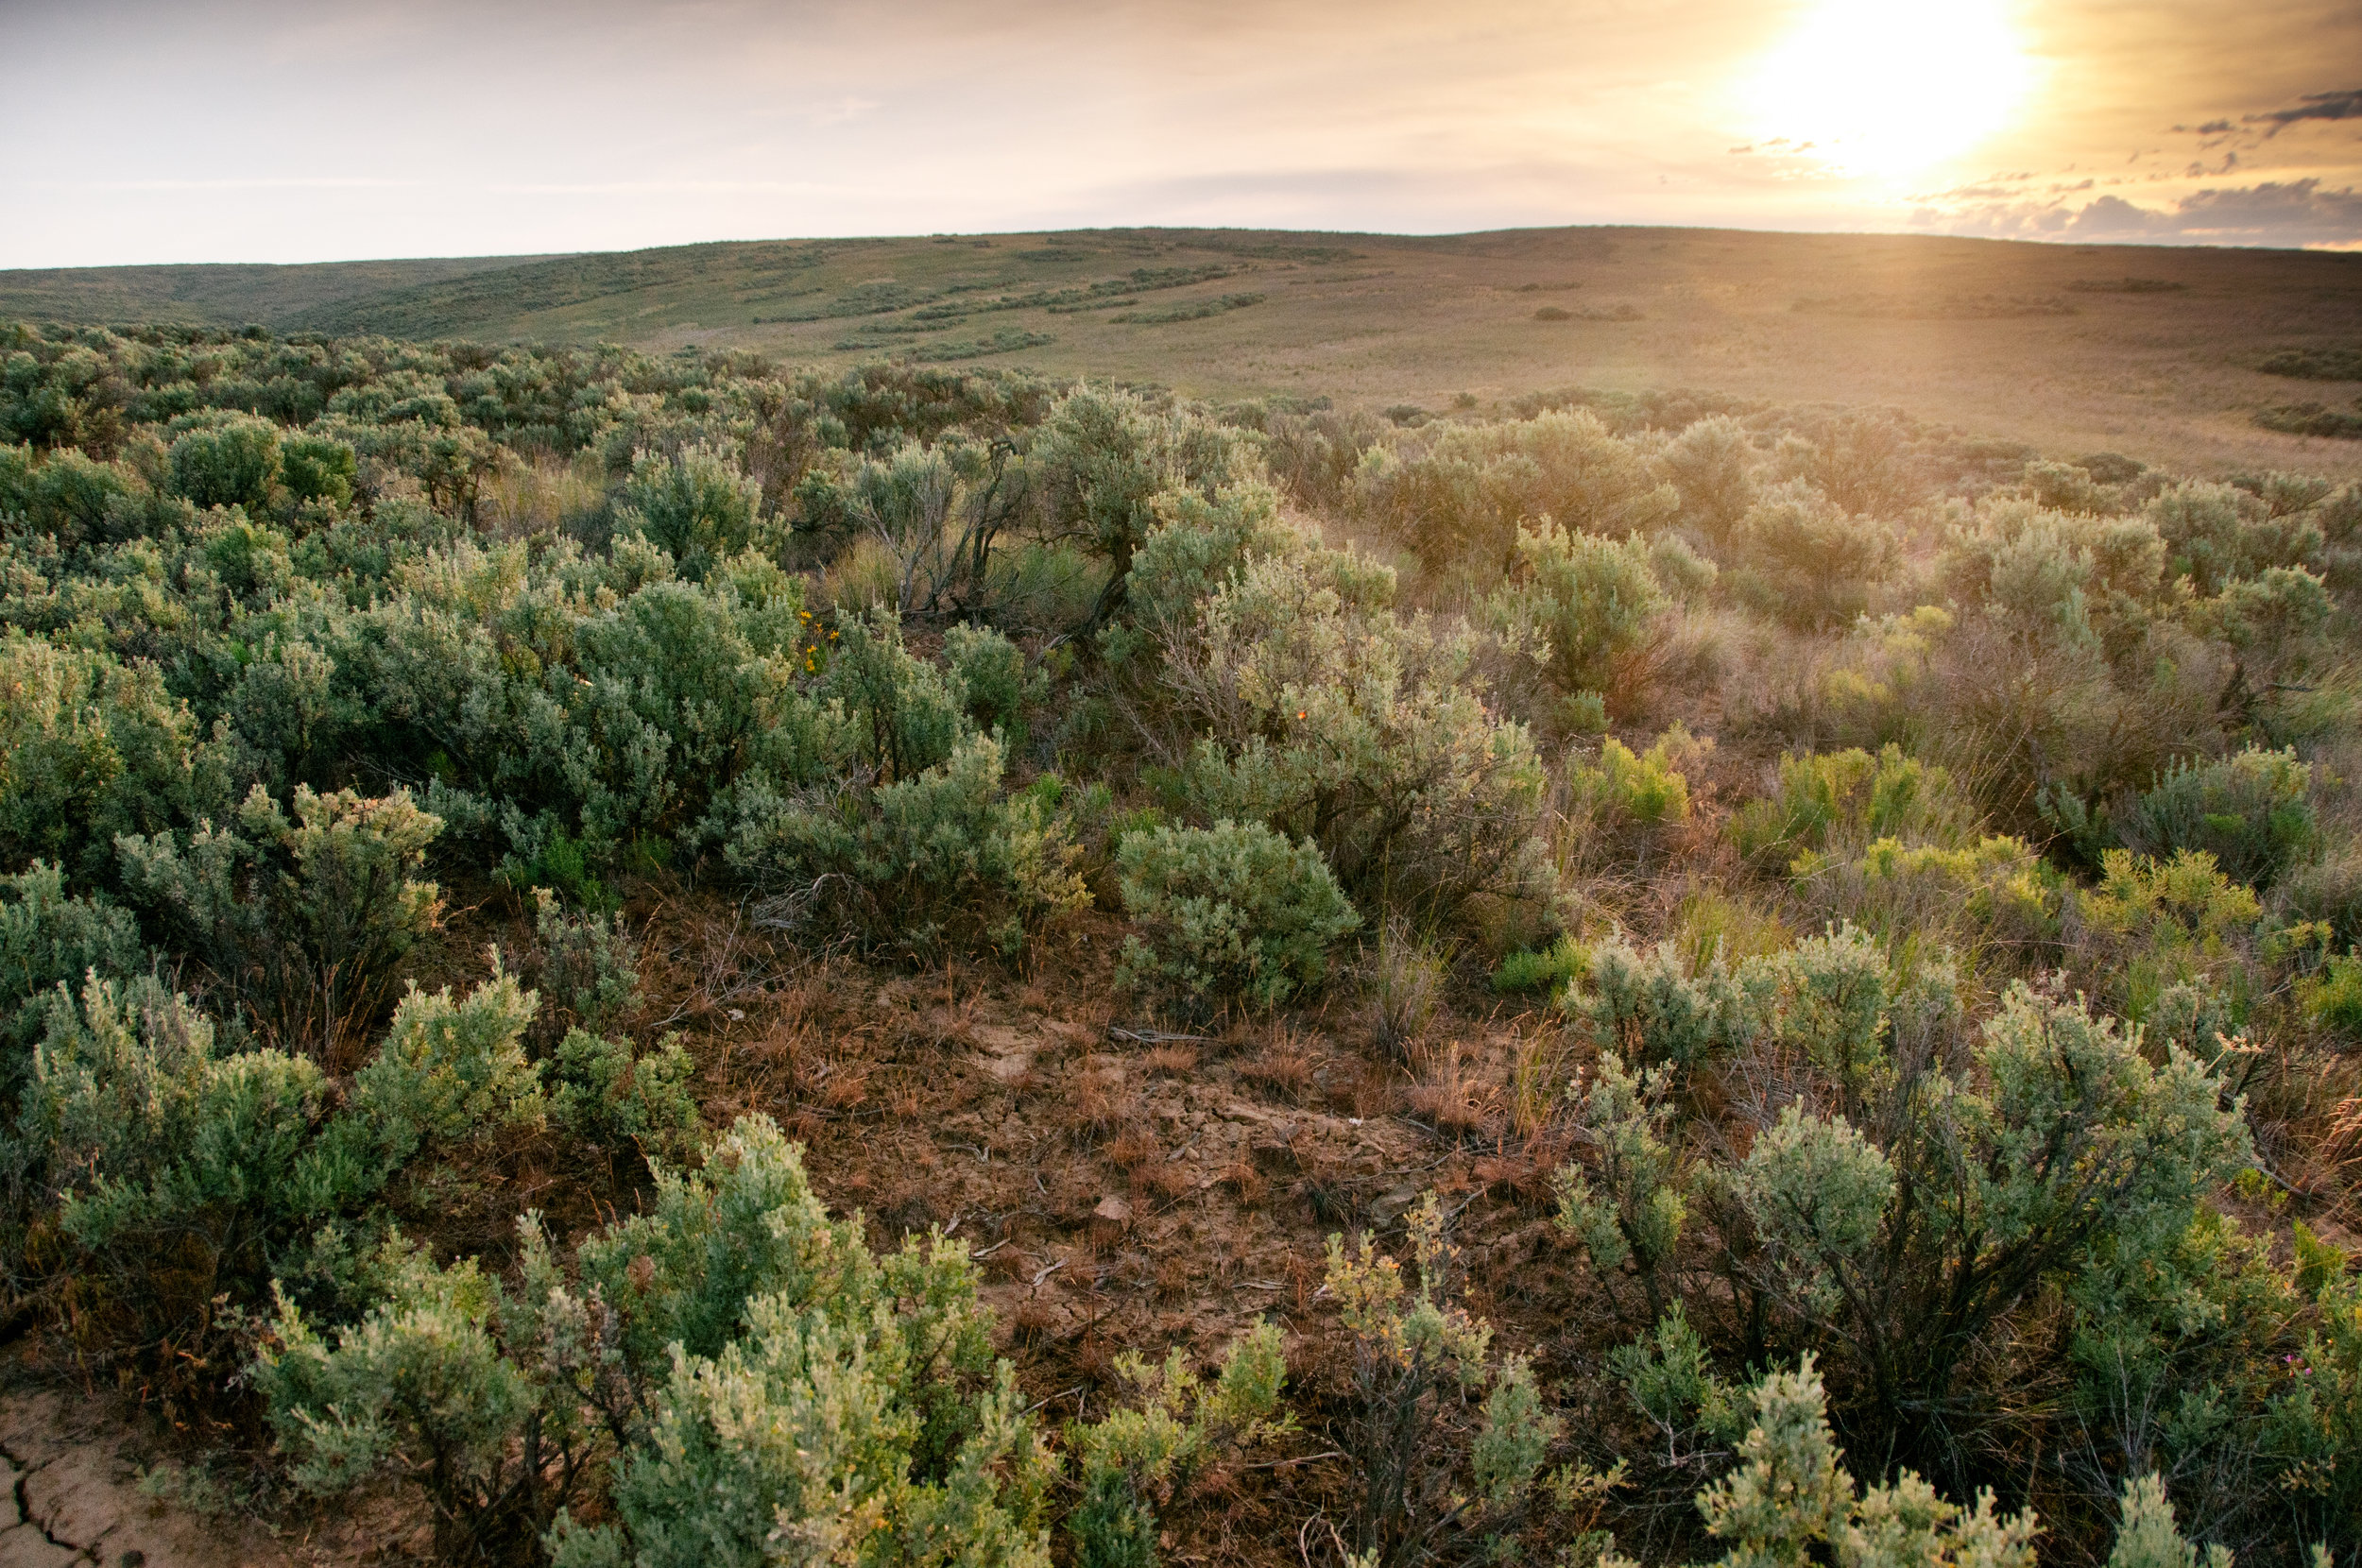 Shrub-steppe once covered nearly half of Washington's lands, but today has declined by two-thirds. Several plants and animals rely on this ecosystem, and The Nature Conservancy is committed to preserving wild spaces like our Beezley Hills Preserve outside Quincy. Photo by Hannah Letinich.